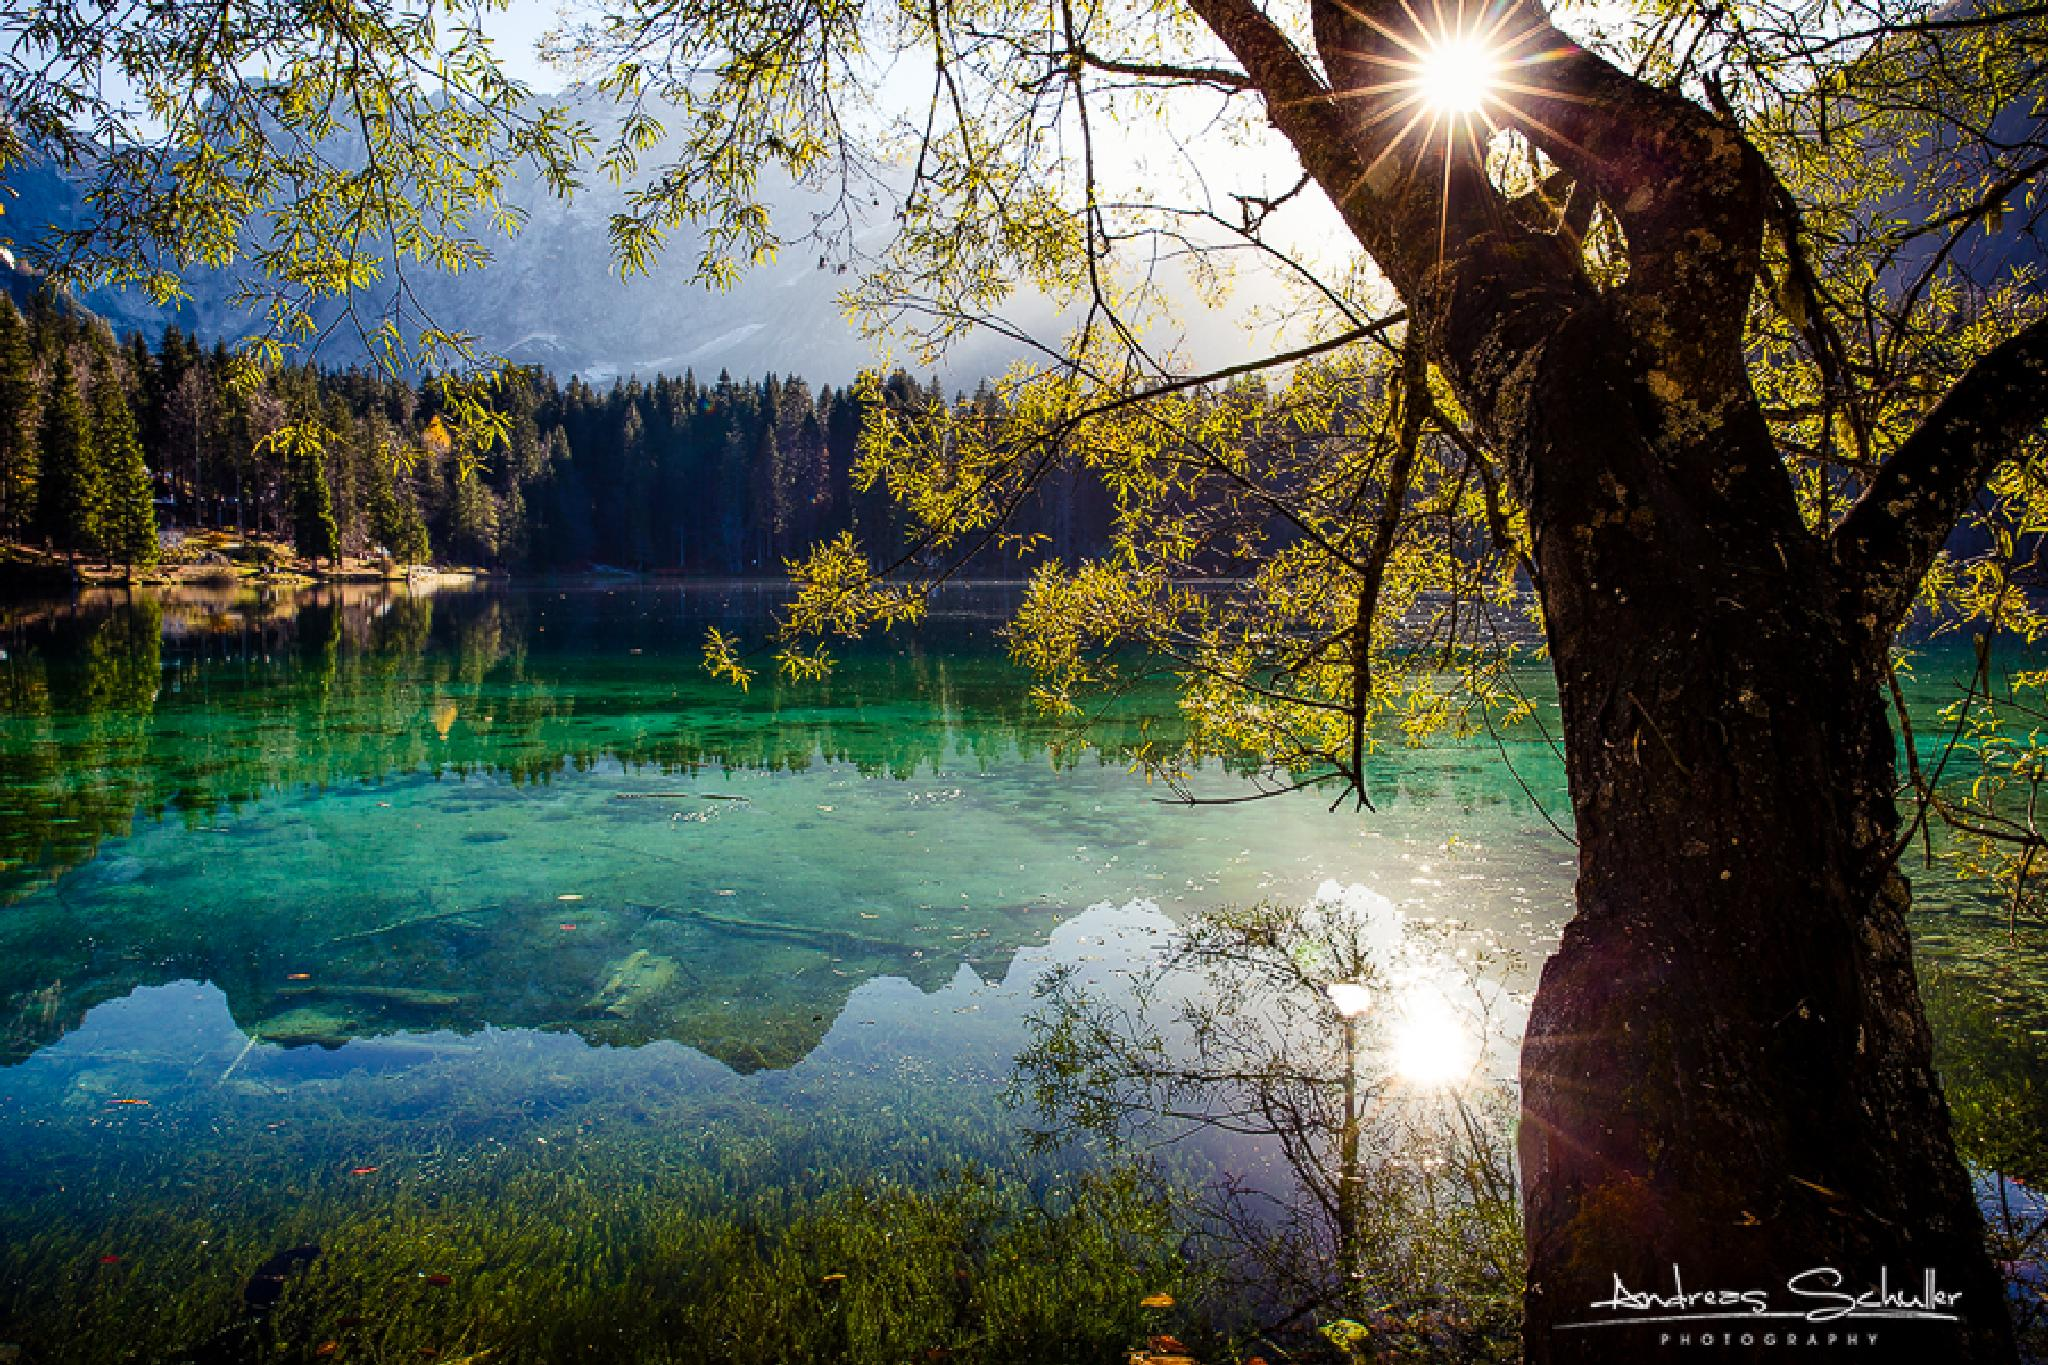 laghi di fusine by Andreas Schuller